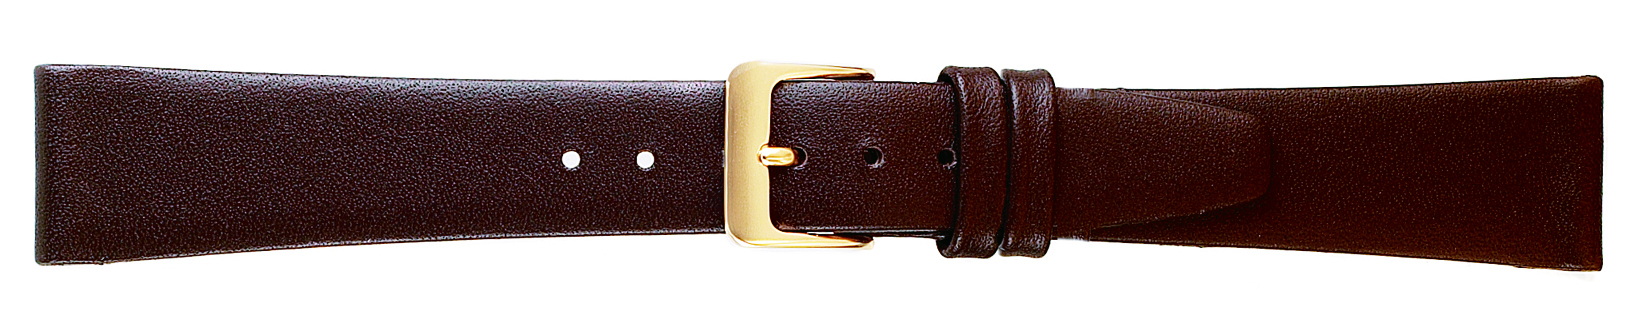 12MM Leather Band Brown Smooth Calf-0